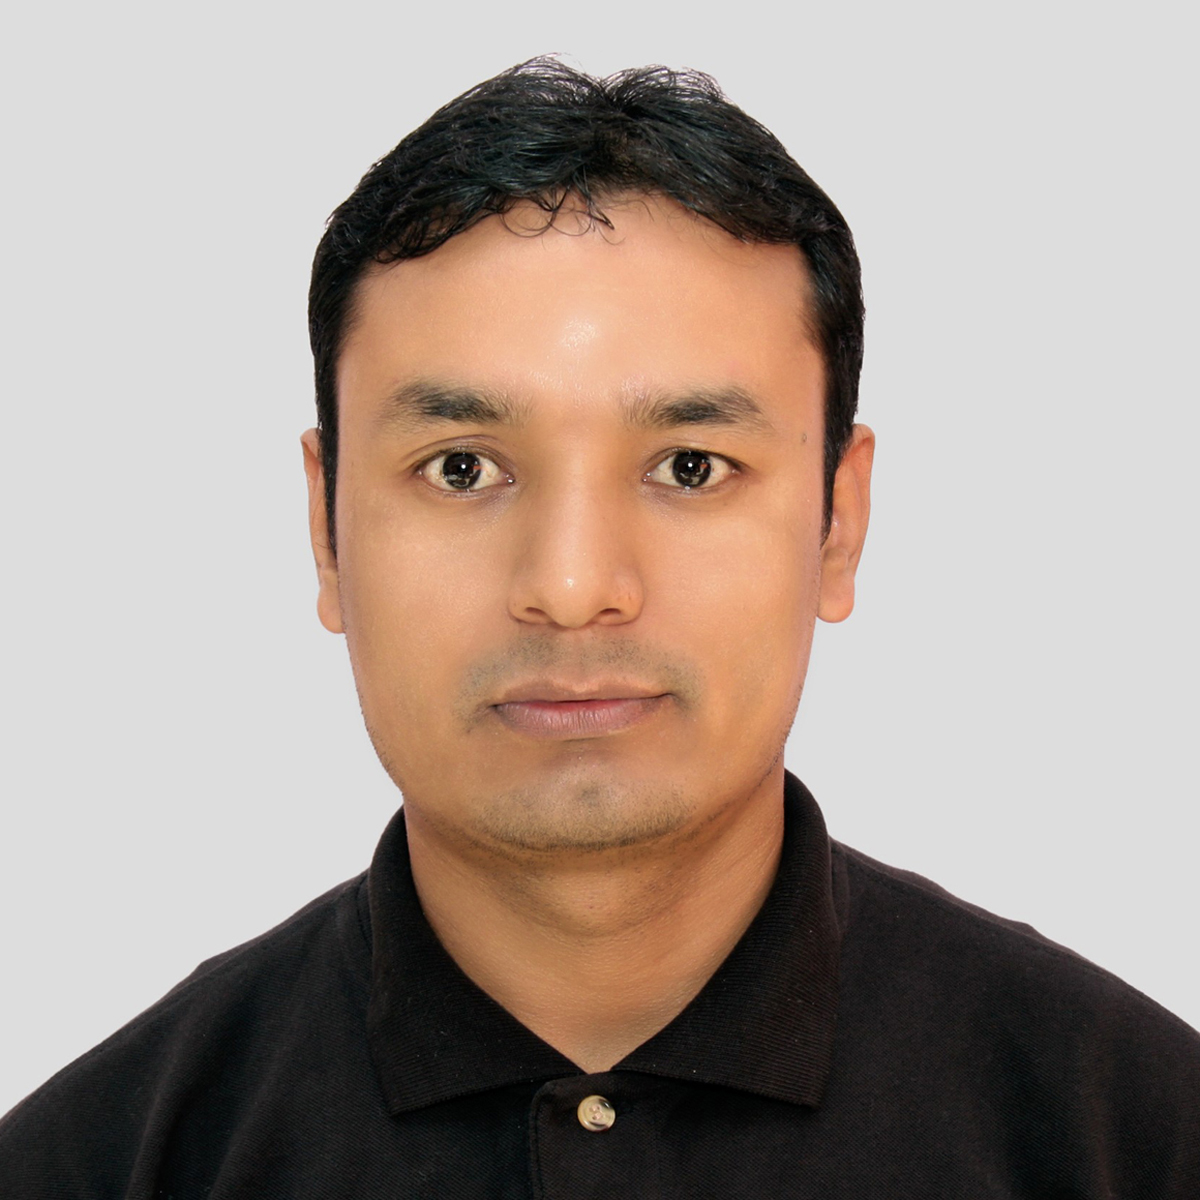 Yogendra Shrestha